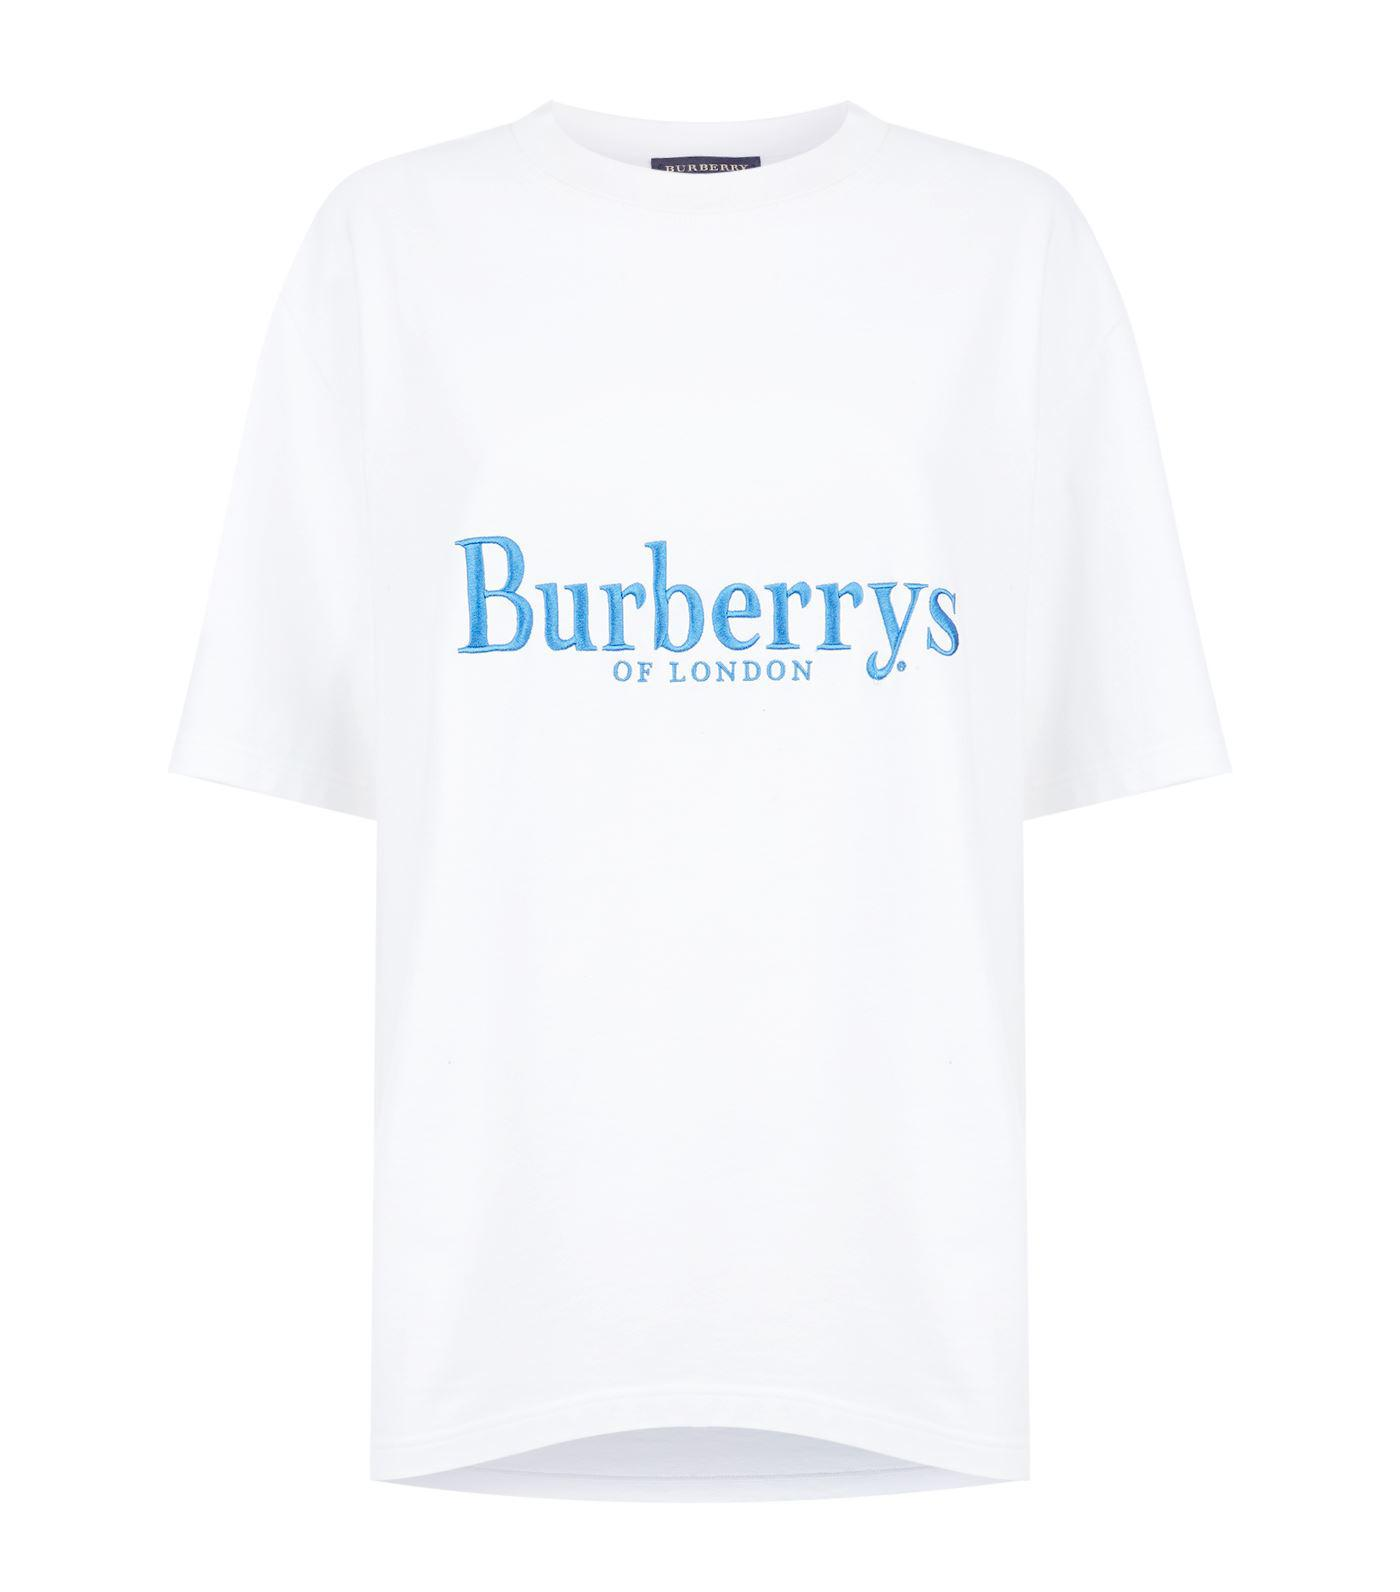 0bf44509 Burberry Embroidered Vintage Logo T-shirt in White for Men - Lyst